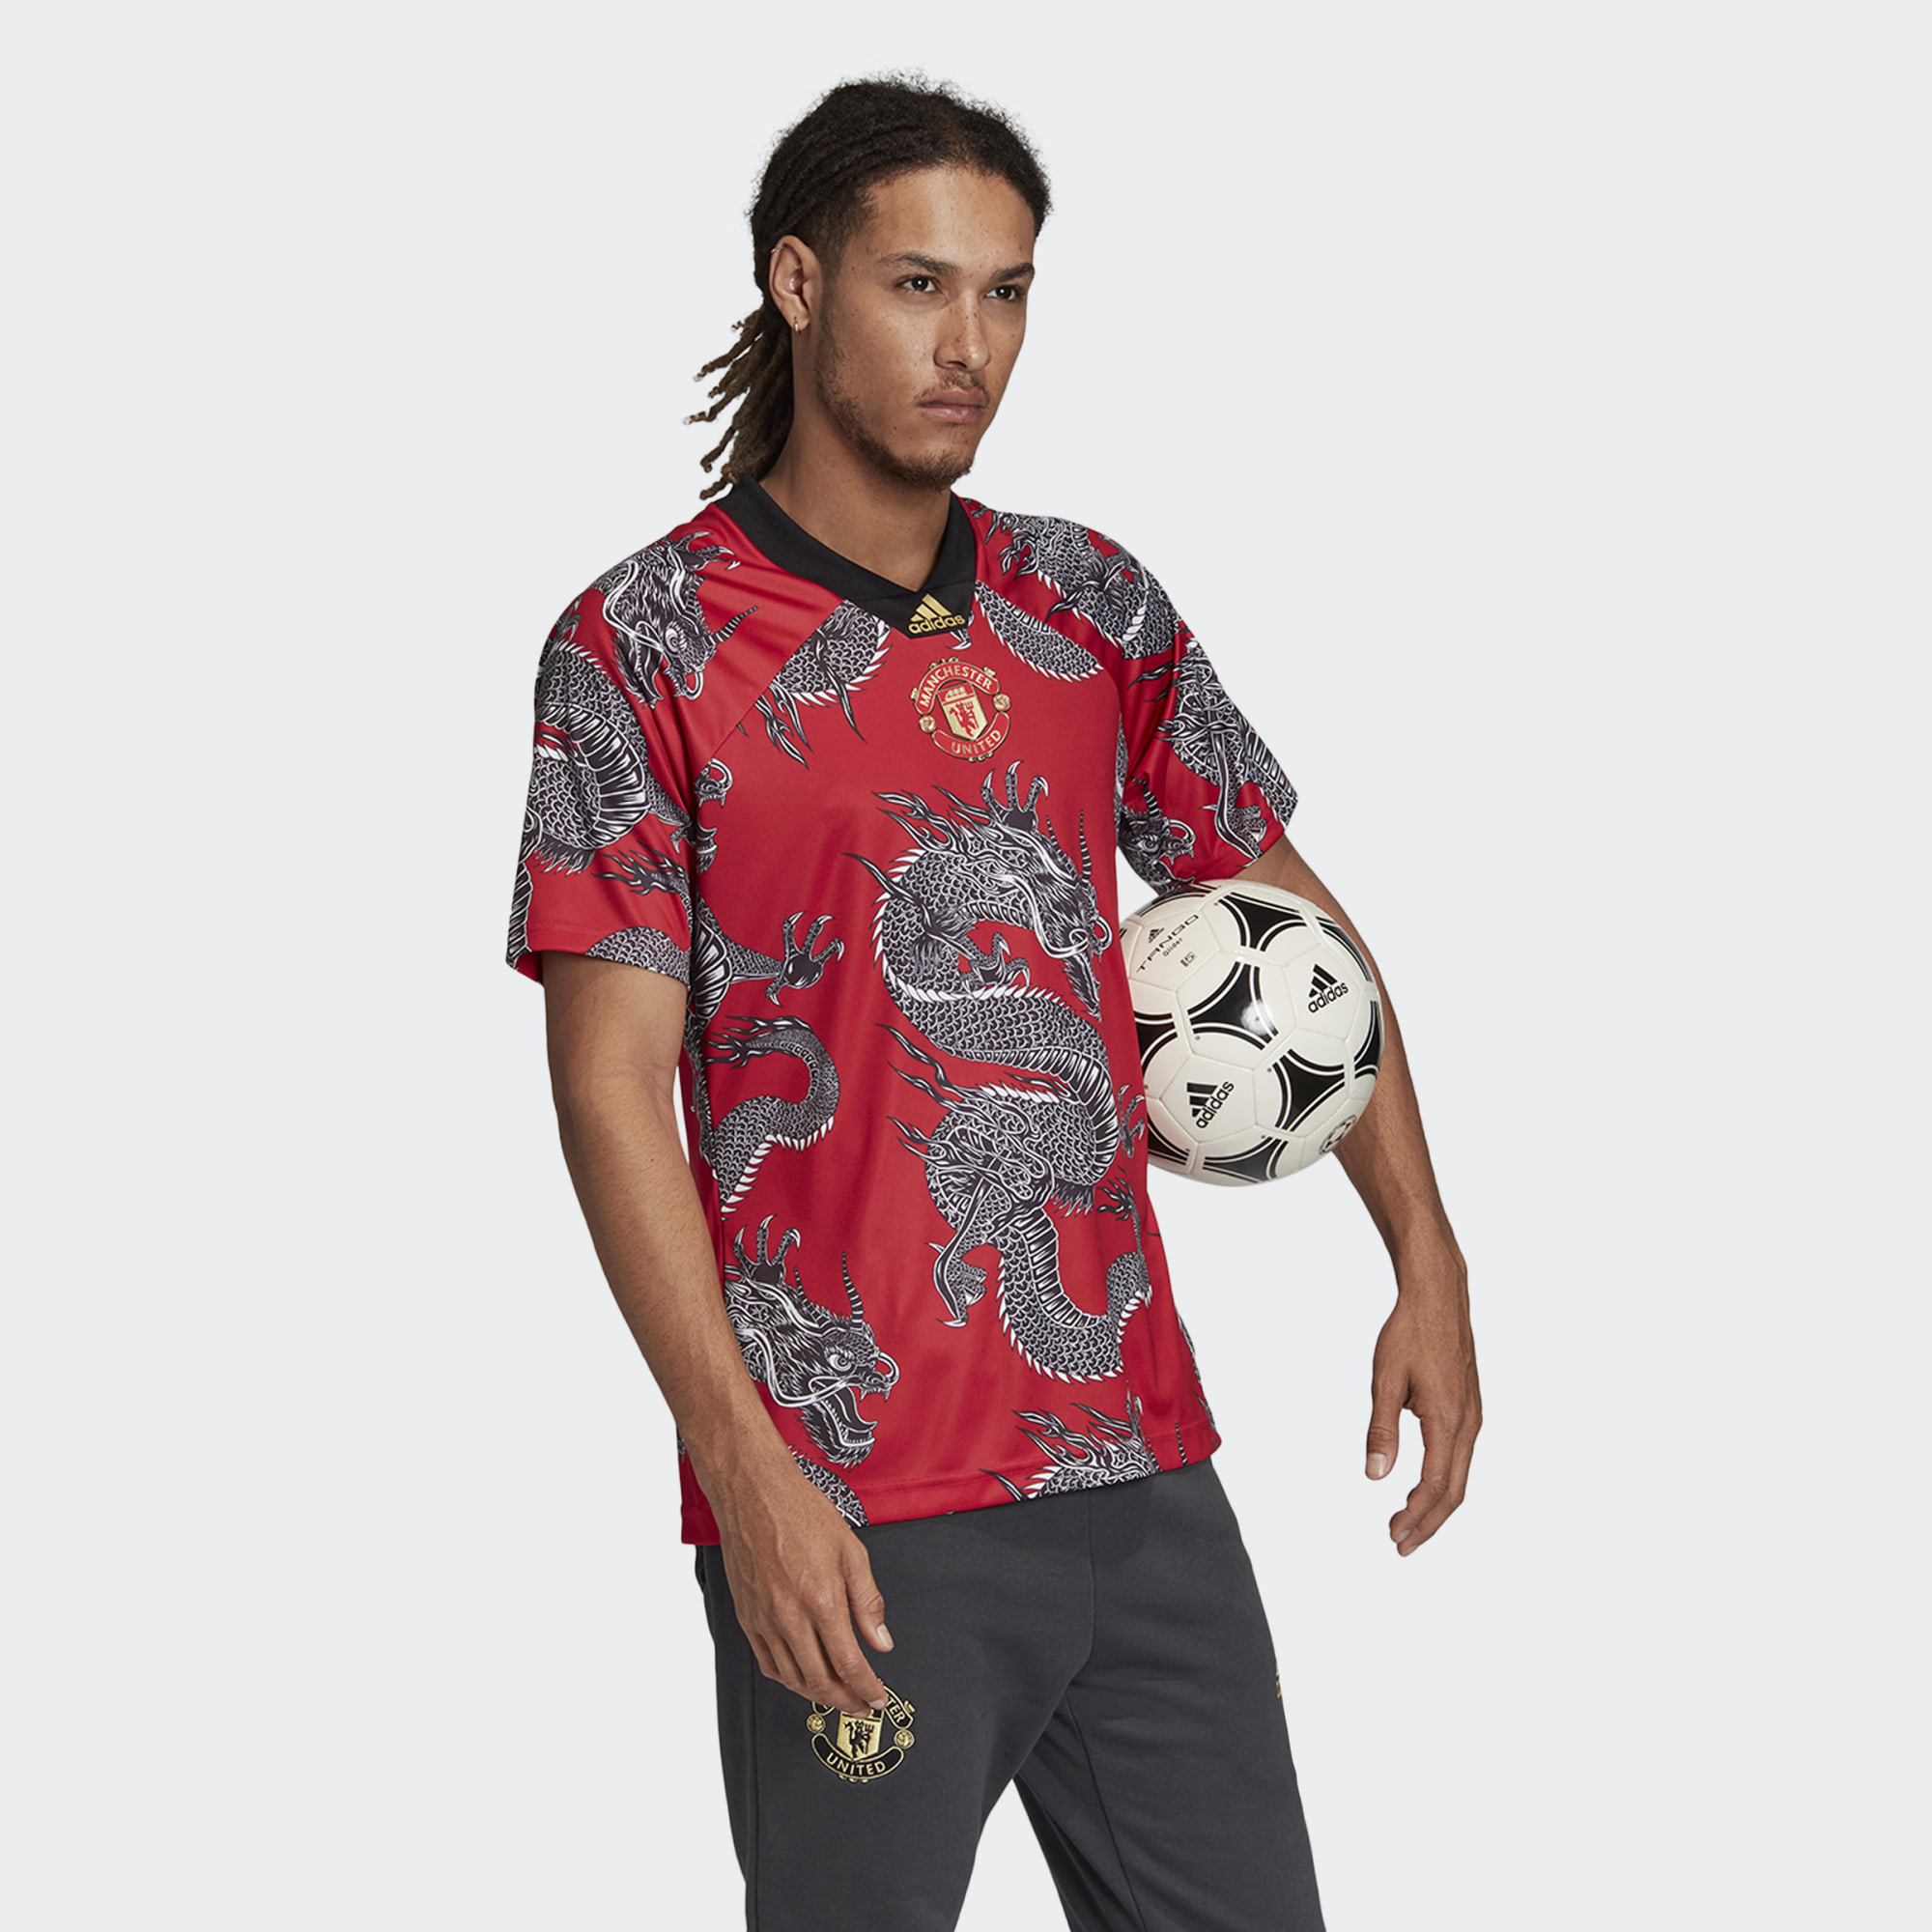 Adidas Manchester United CNY Jersey - Real Red | 19/20 Kits ...